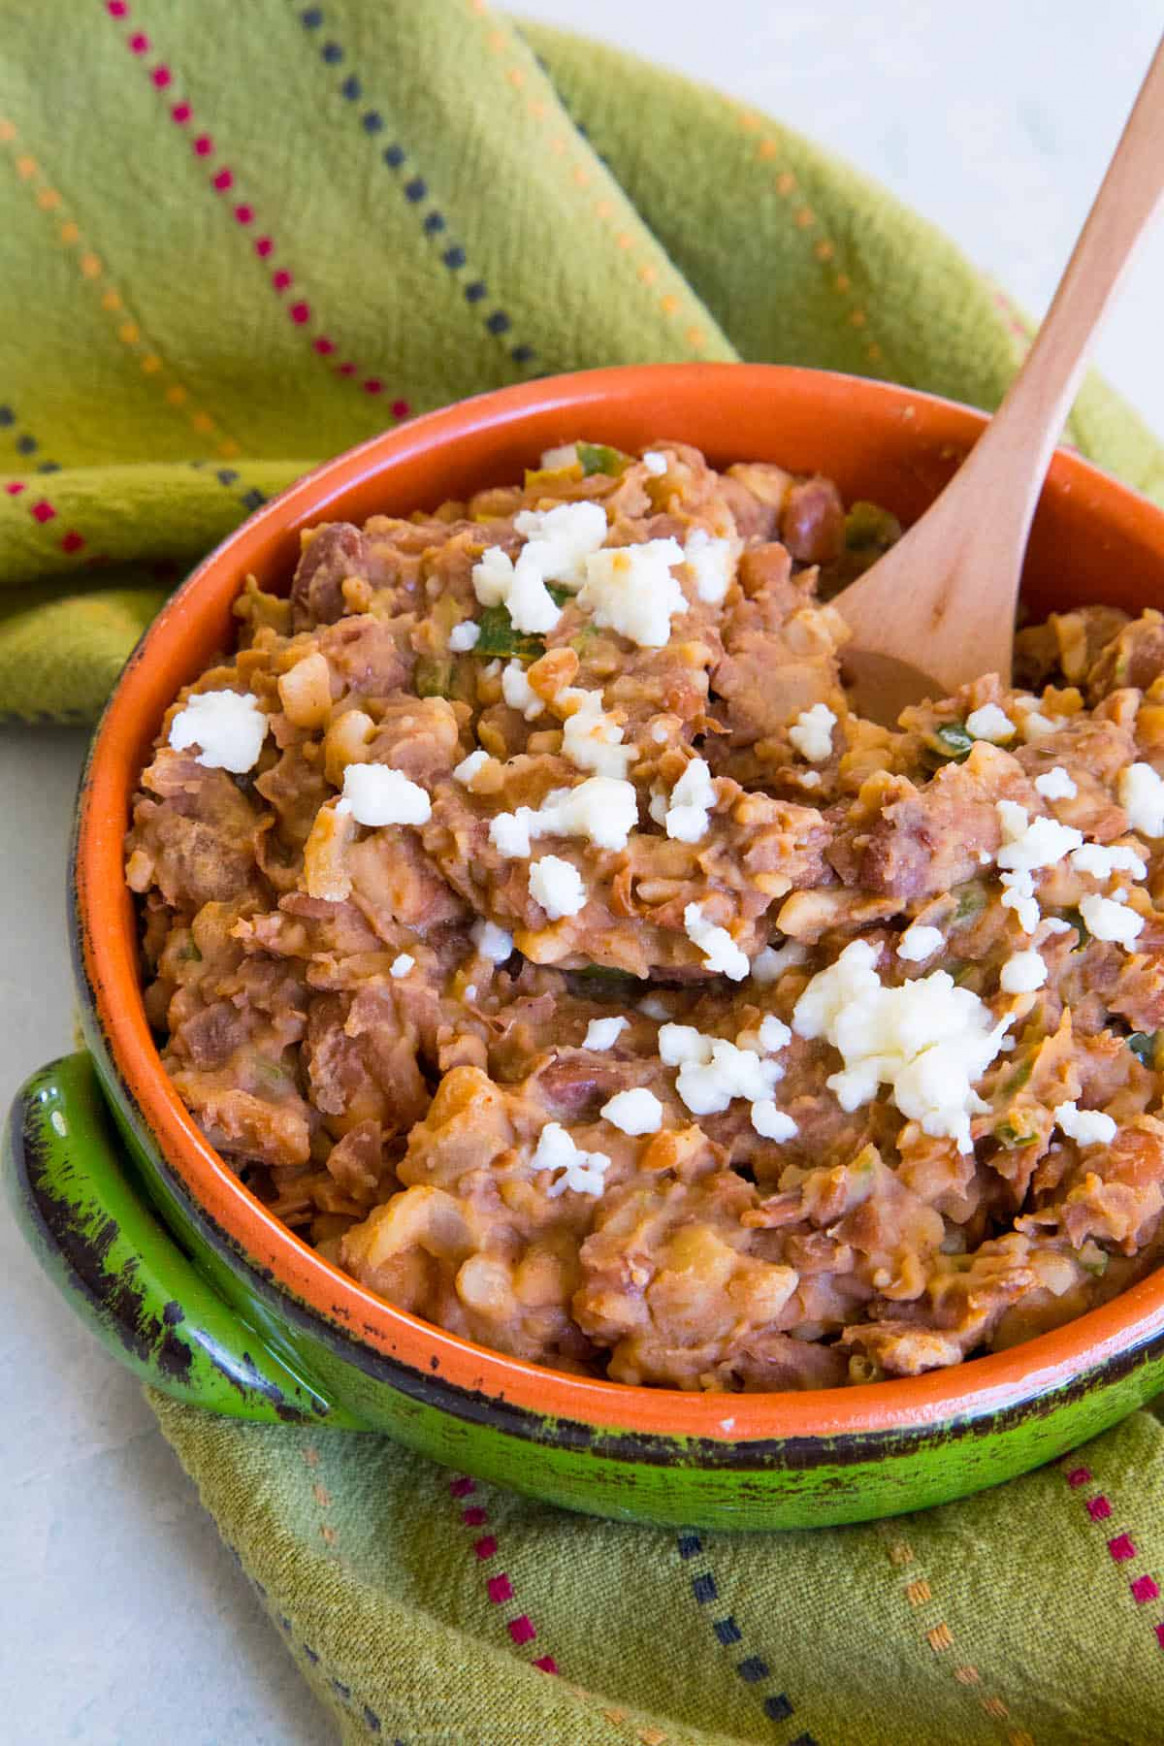 Easy Homemade Refried Beans Recipe - recipe vegetarian refried beans